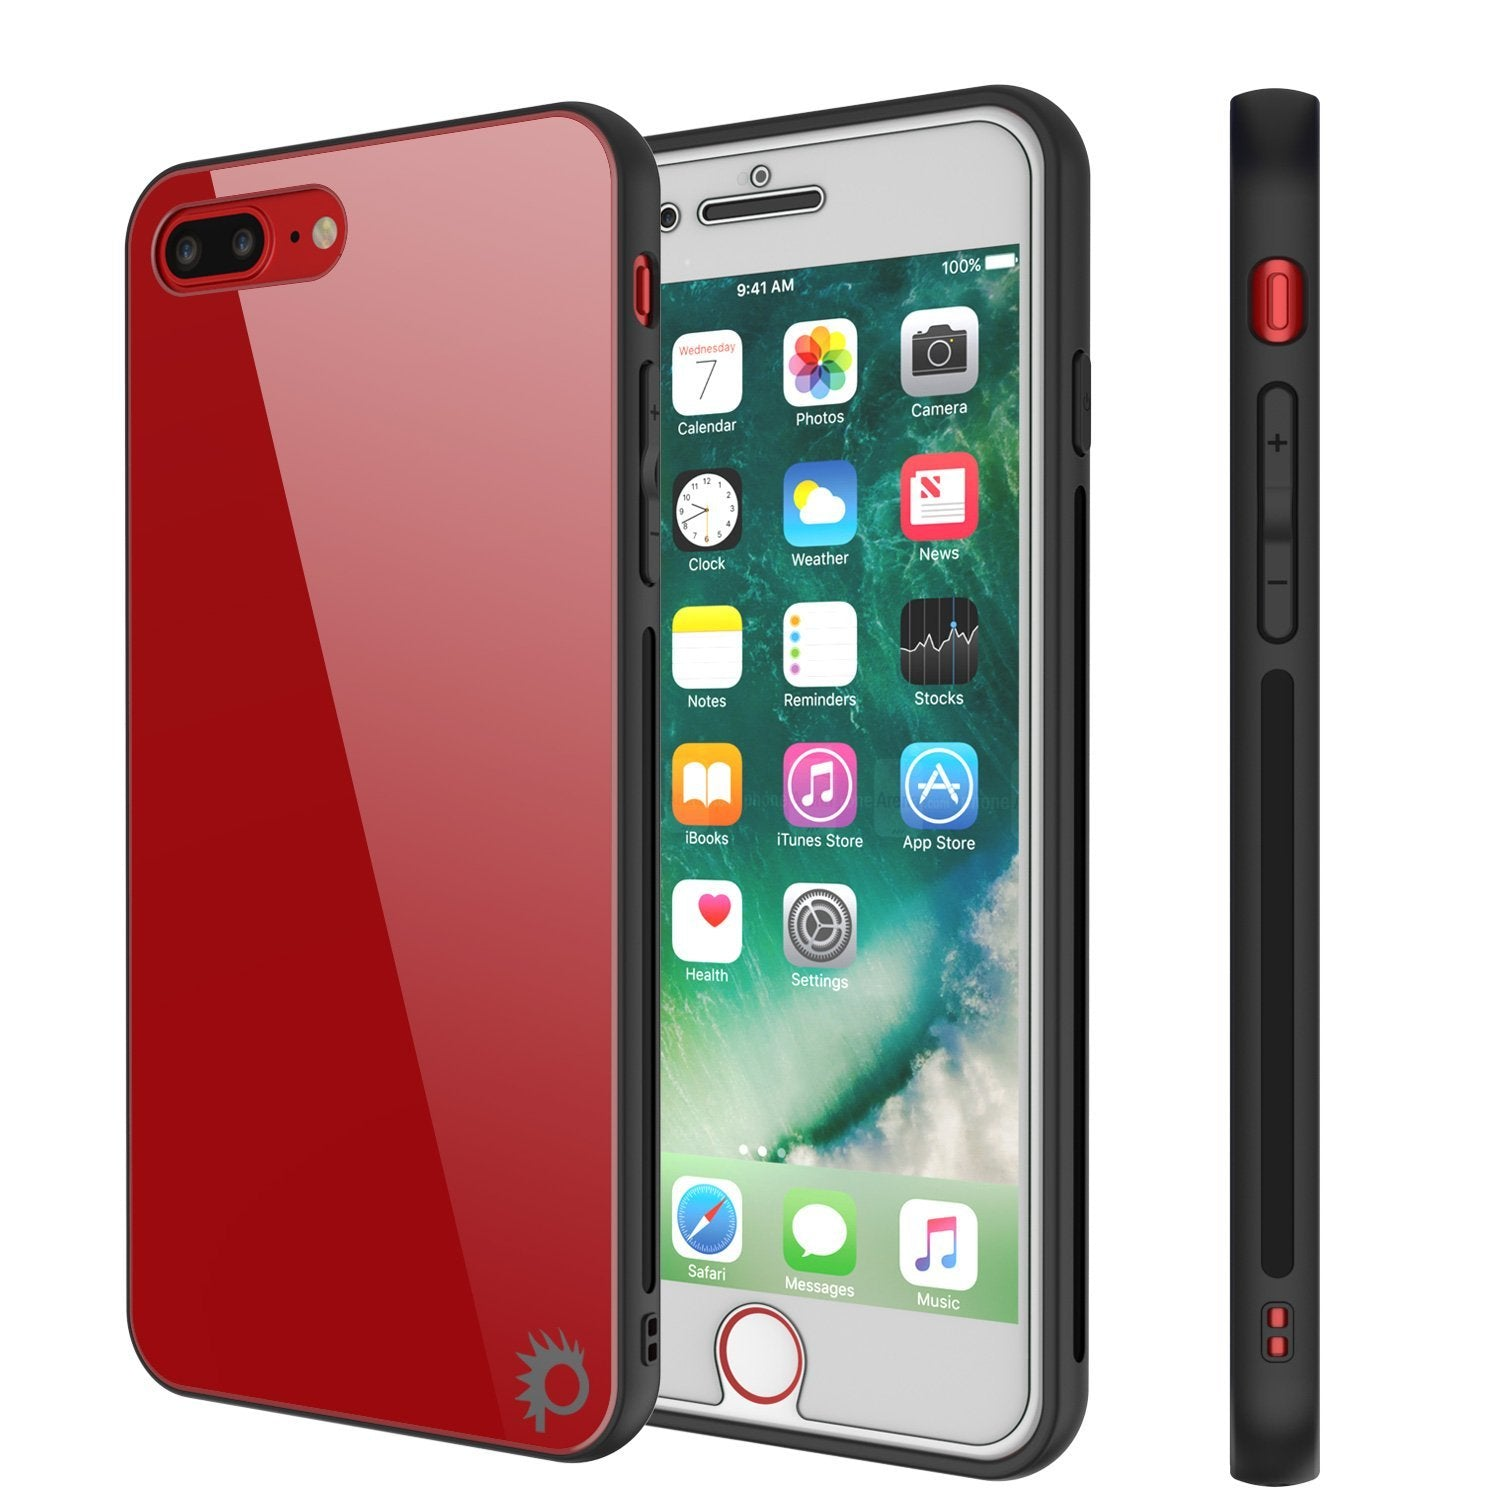 iPhone 8 PLUS Case, Punkcase GlassShield Ultra Thin Protective 9H Full Body Tempered Glass Cover W/ Drop Protection & Non Slip Grip for Apple iPhone 7 PLUS / Apple iPhone 8 PLUS (Red)